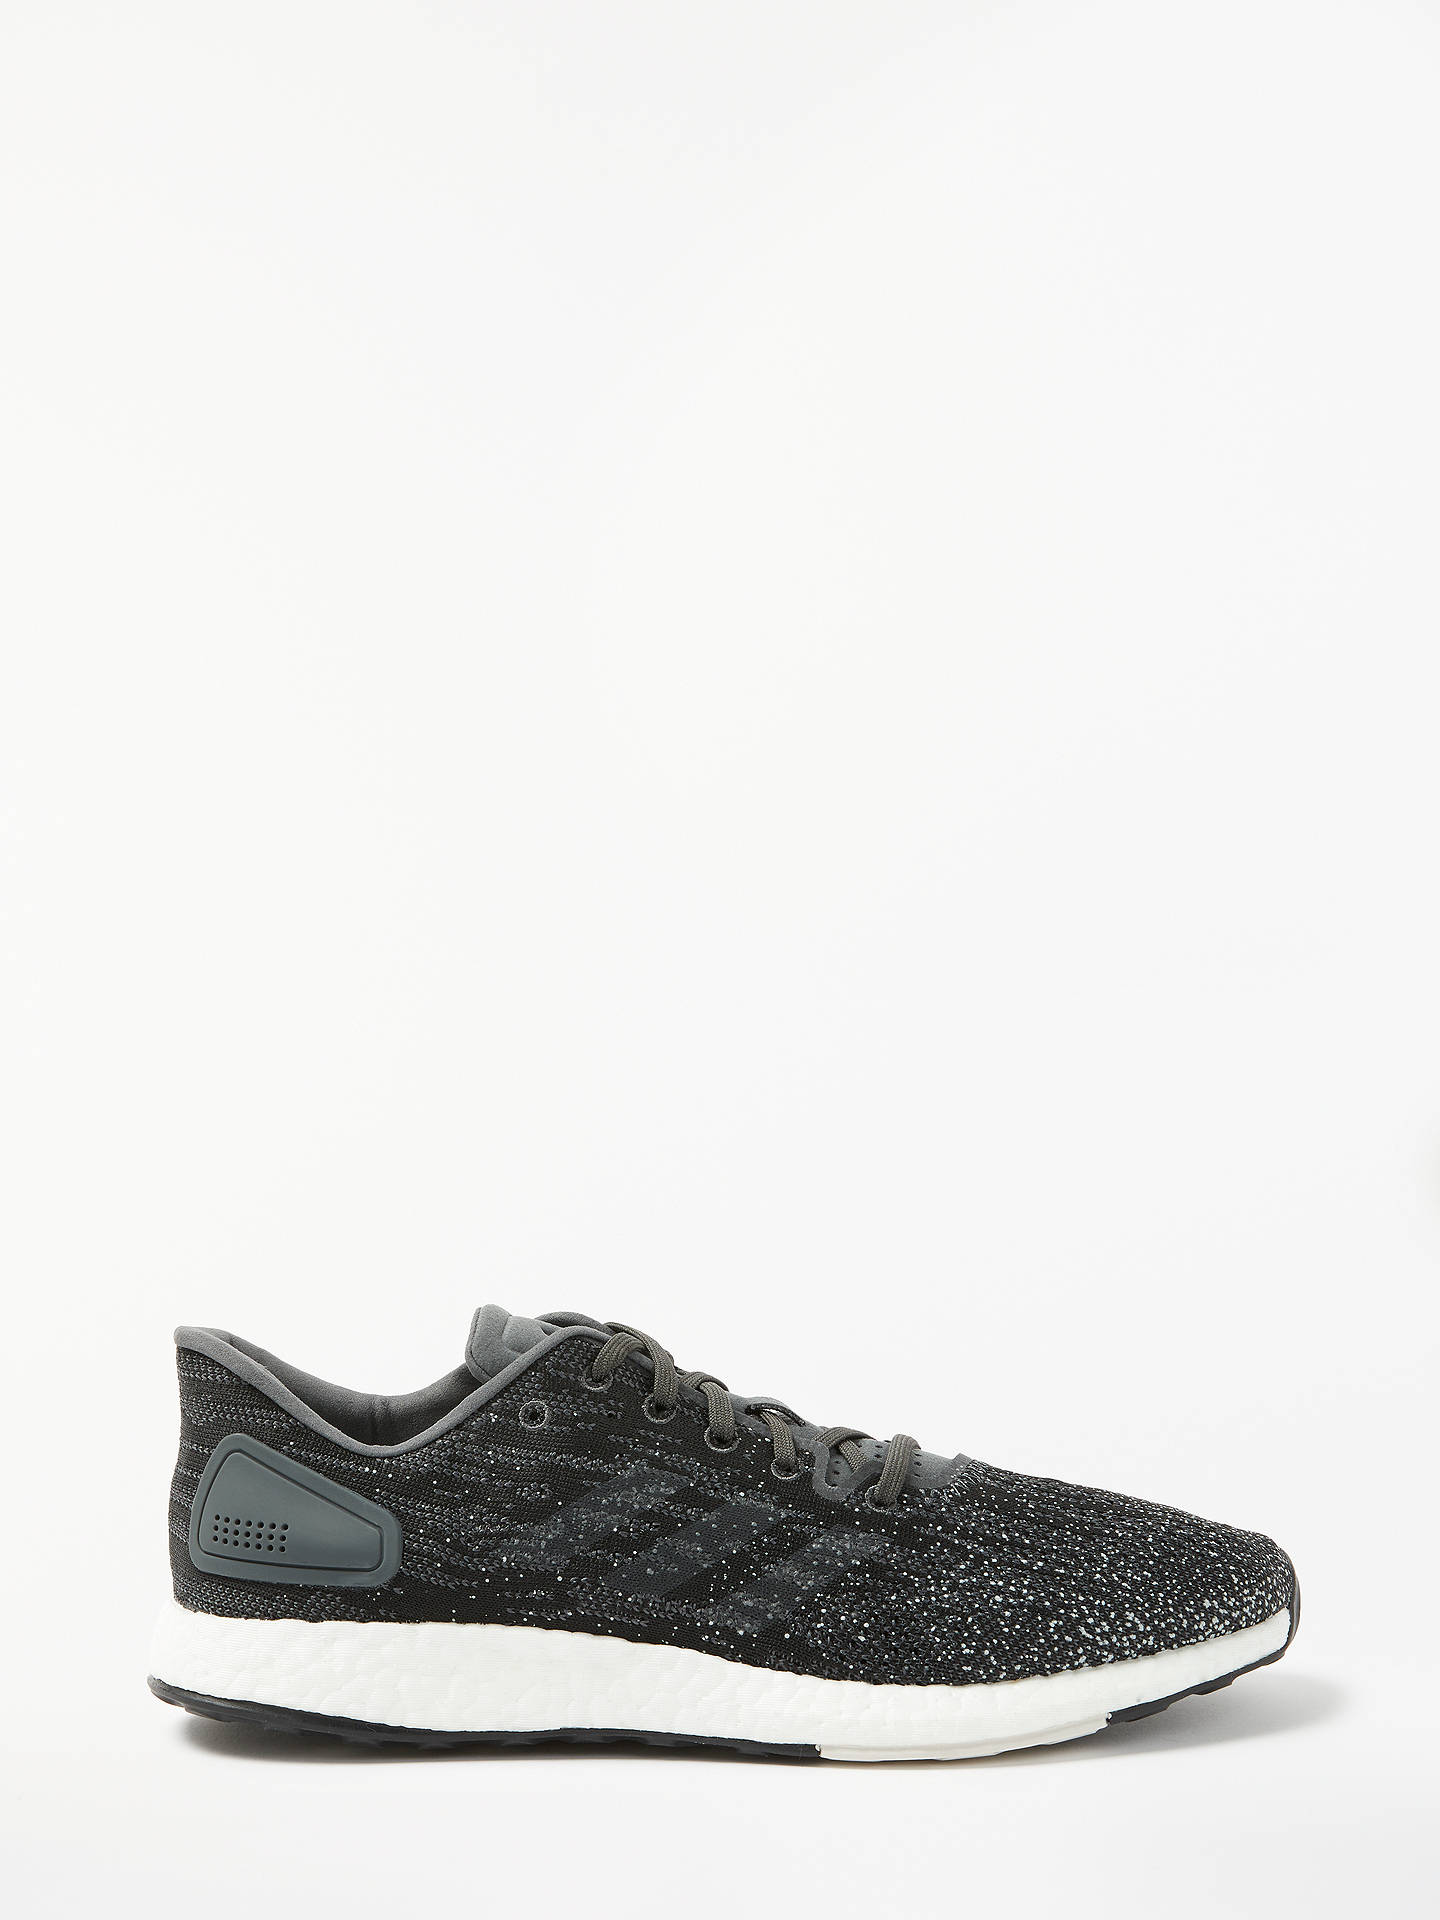 new concept ecd74 f75ac Buyadidas PureBoost DPR Mens Running Shoes, Grey SixRaw White, 7.5 Online  at ...